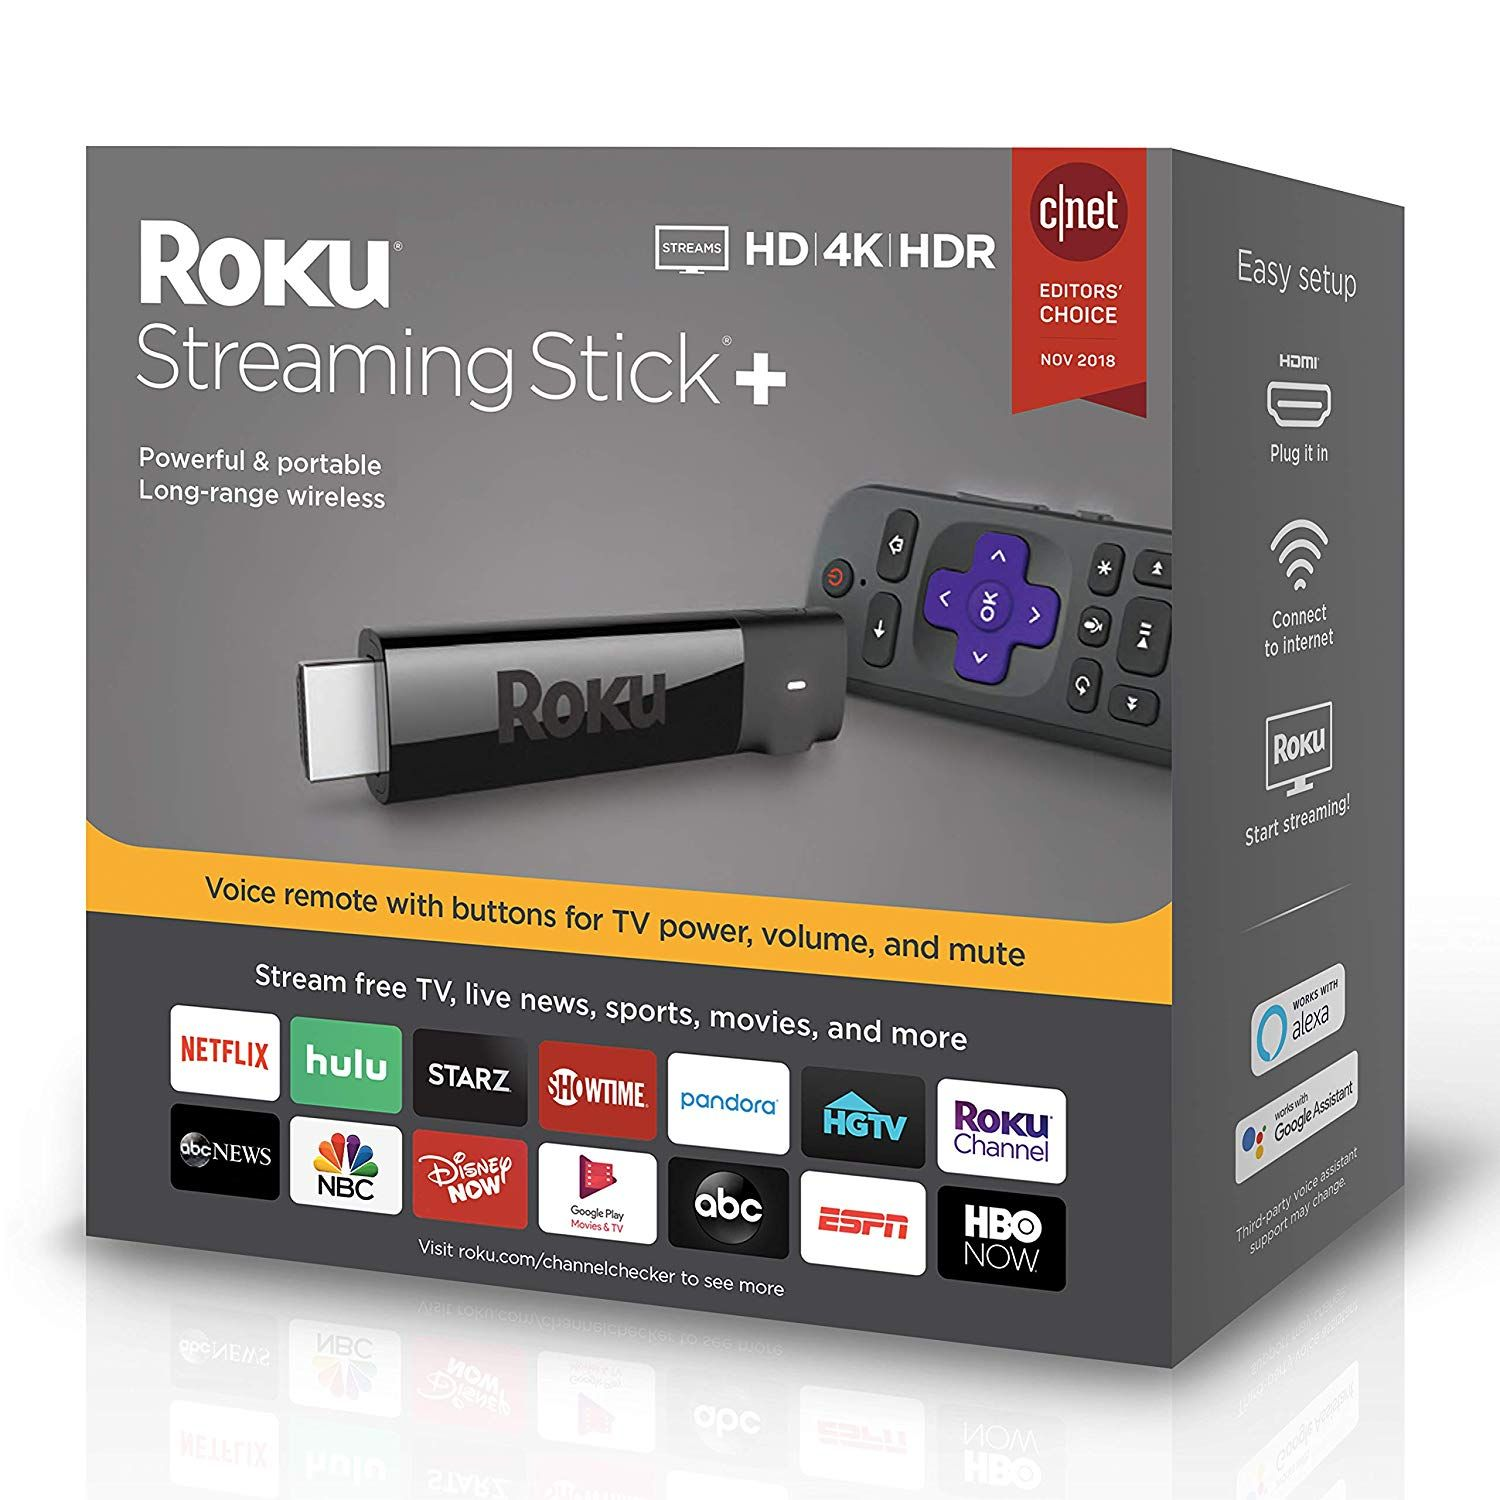 Roku Streaming Stick+ HD/4K/HDR Streaming Device with